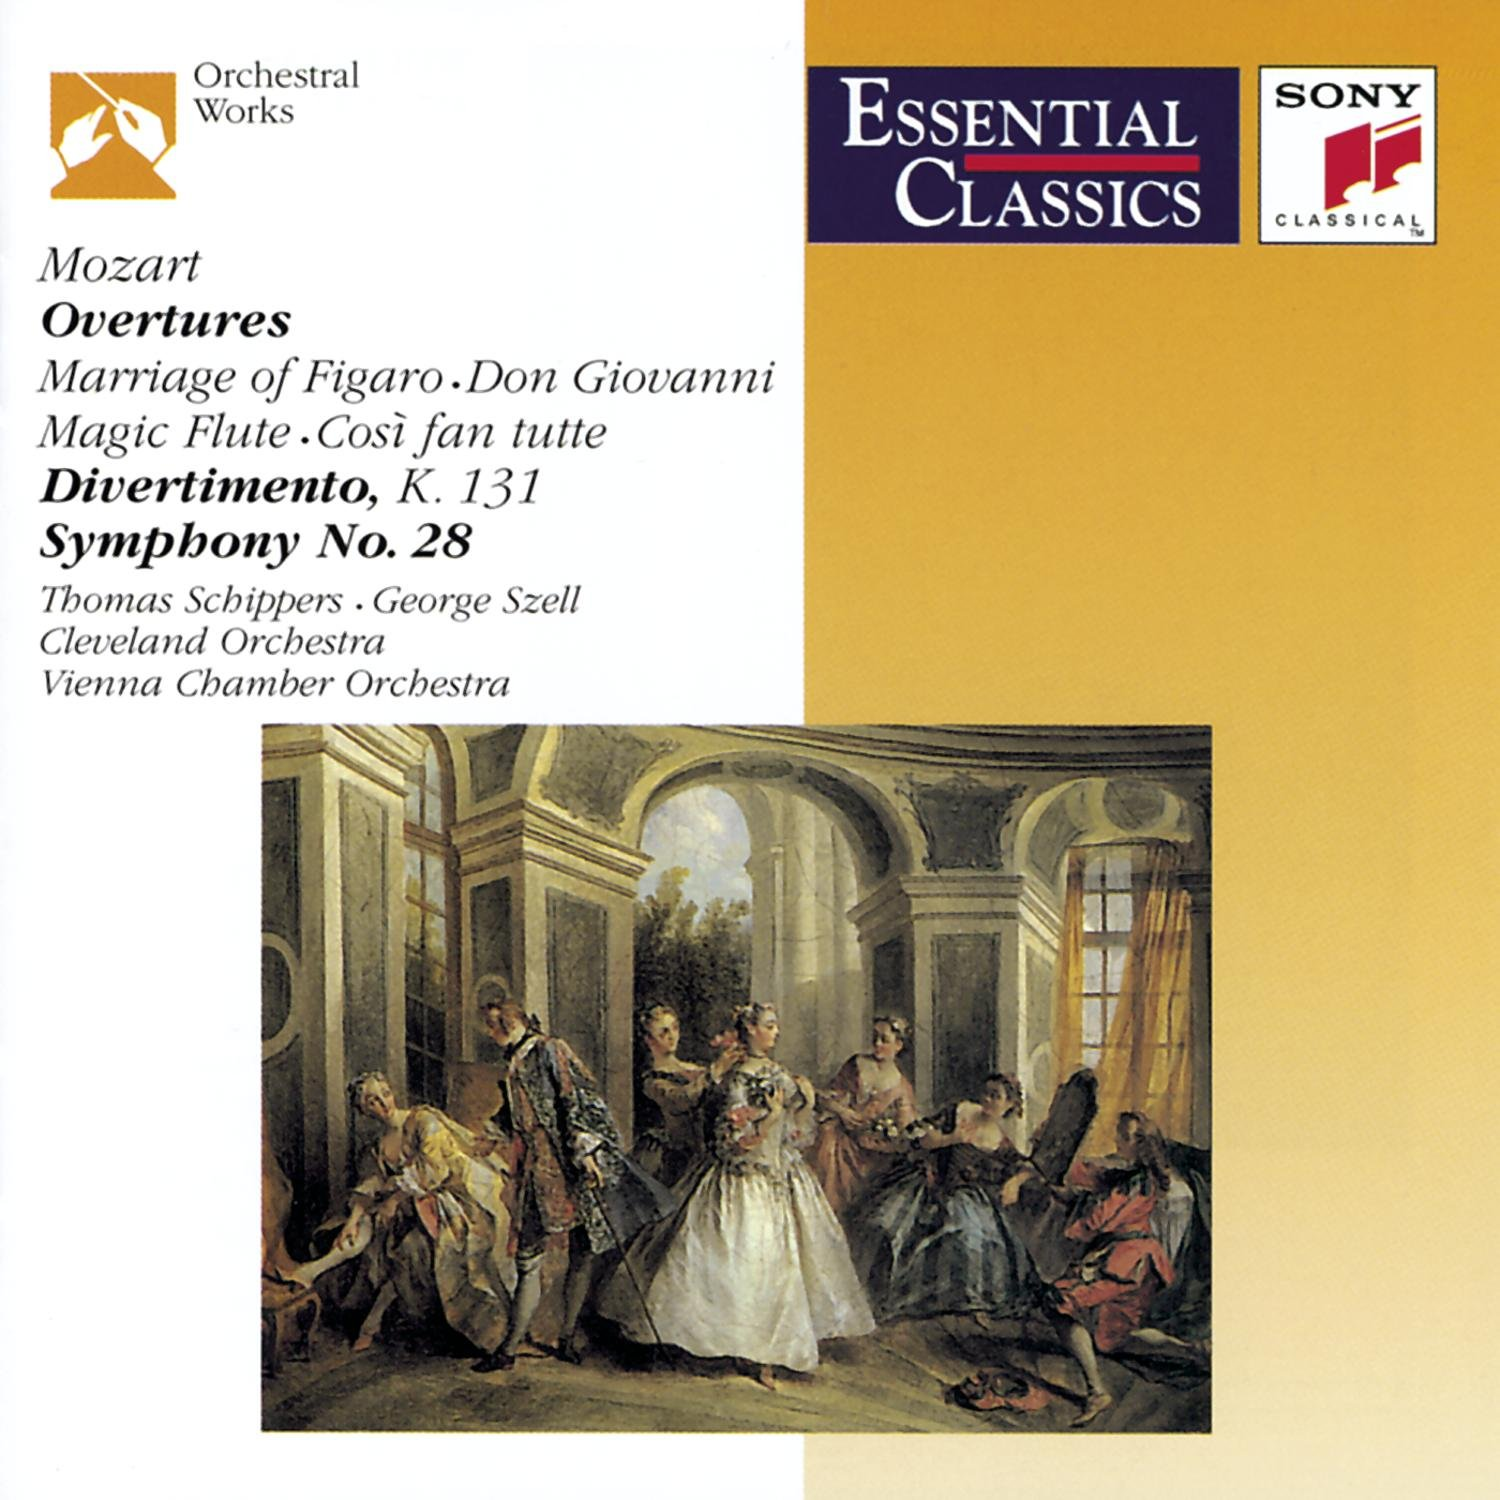 Mozart: Overtures (Essential Classics) by Sony Classical